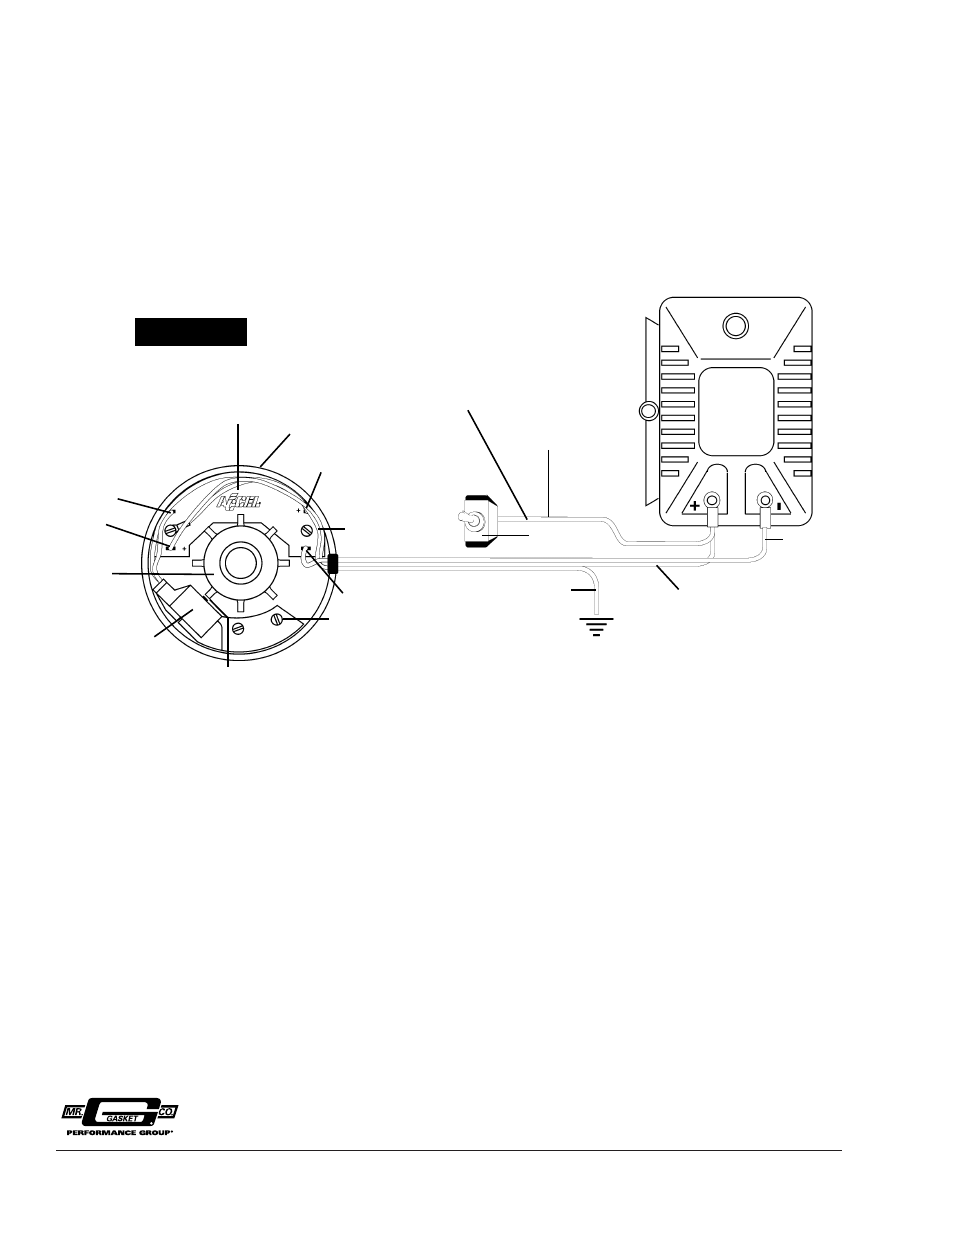 Accel Distributor A71100e Wiring Electrical Diagrams Mallory Pro Comp Diagram Street Billet Schematic Parts Vintage